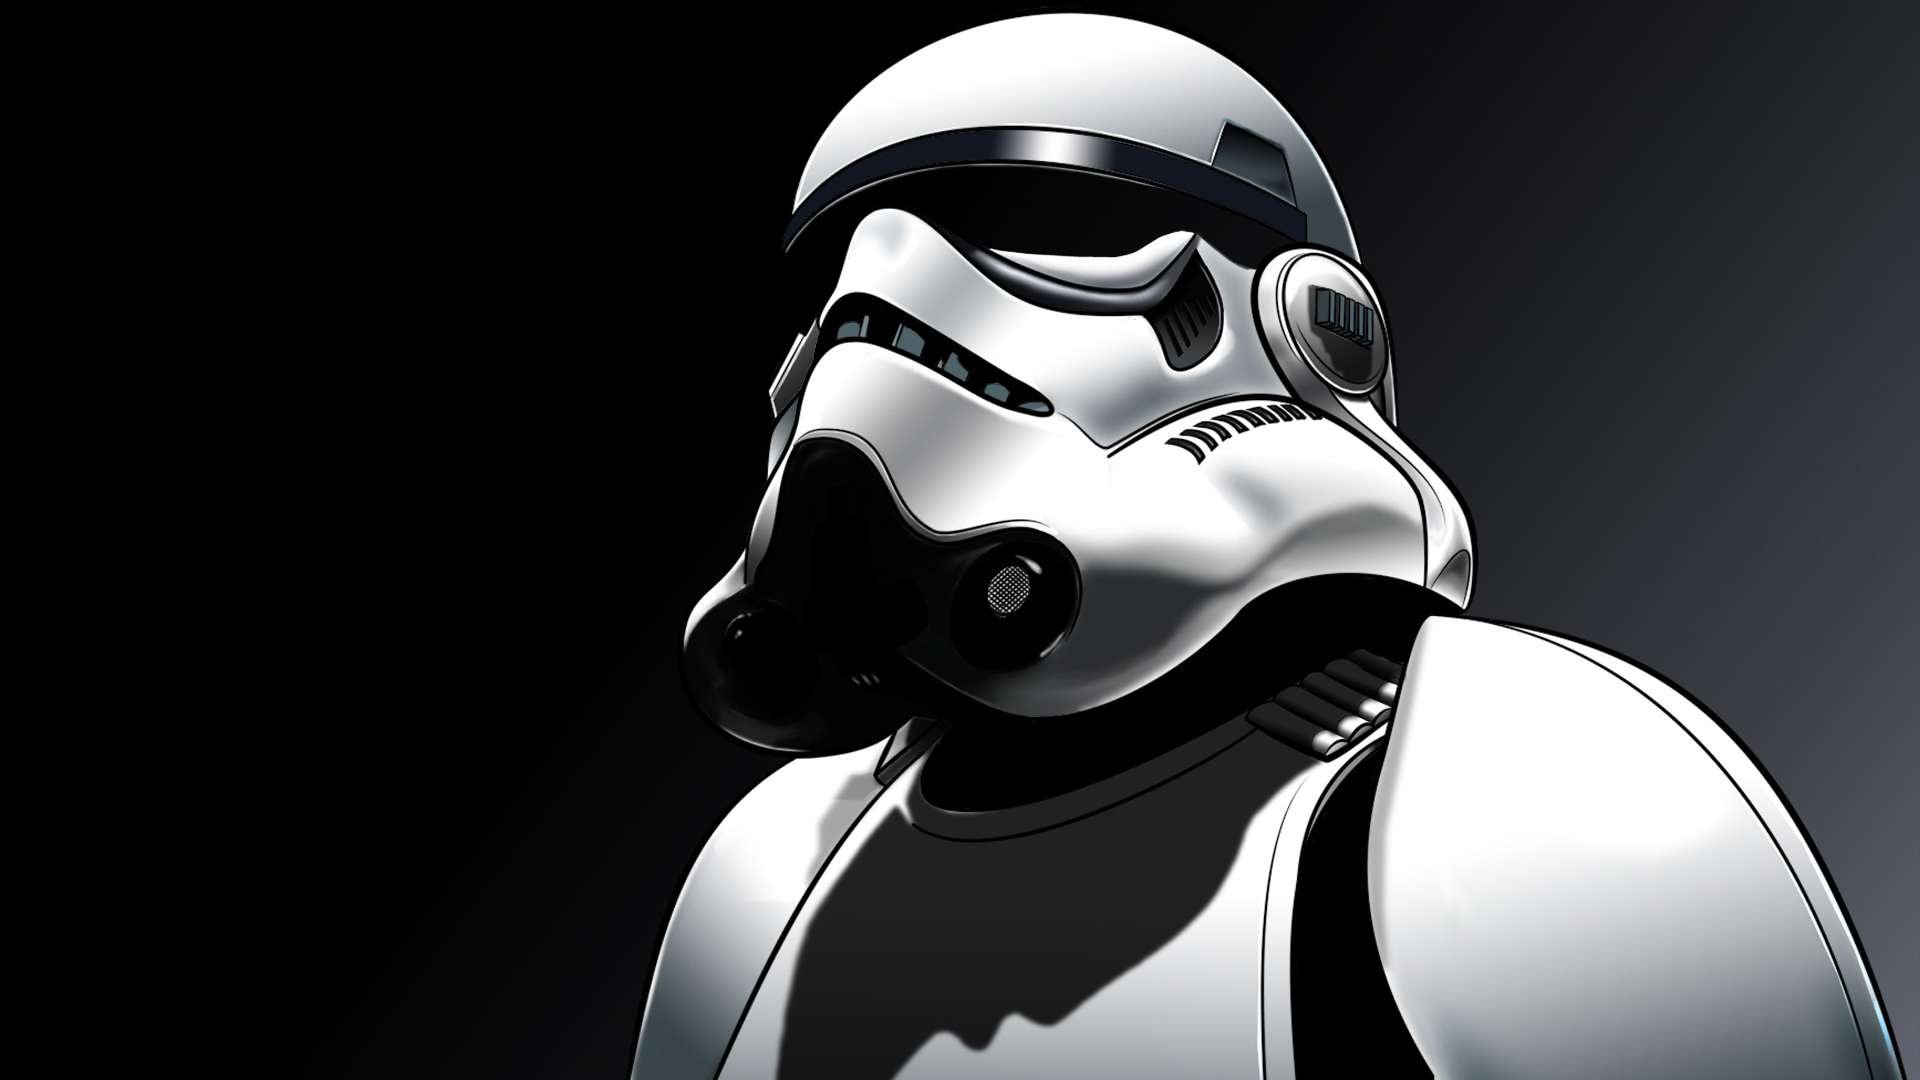 Star Wars Wallpaper 195